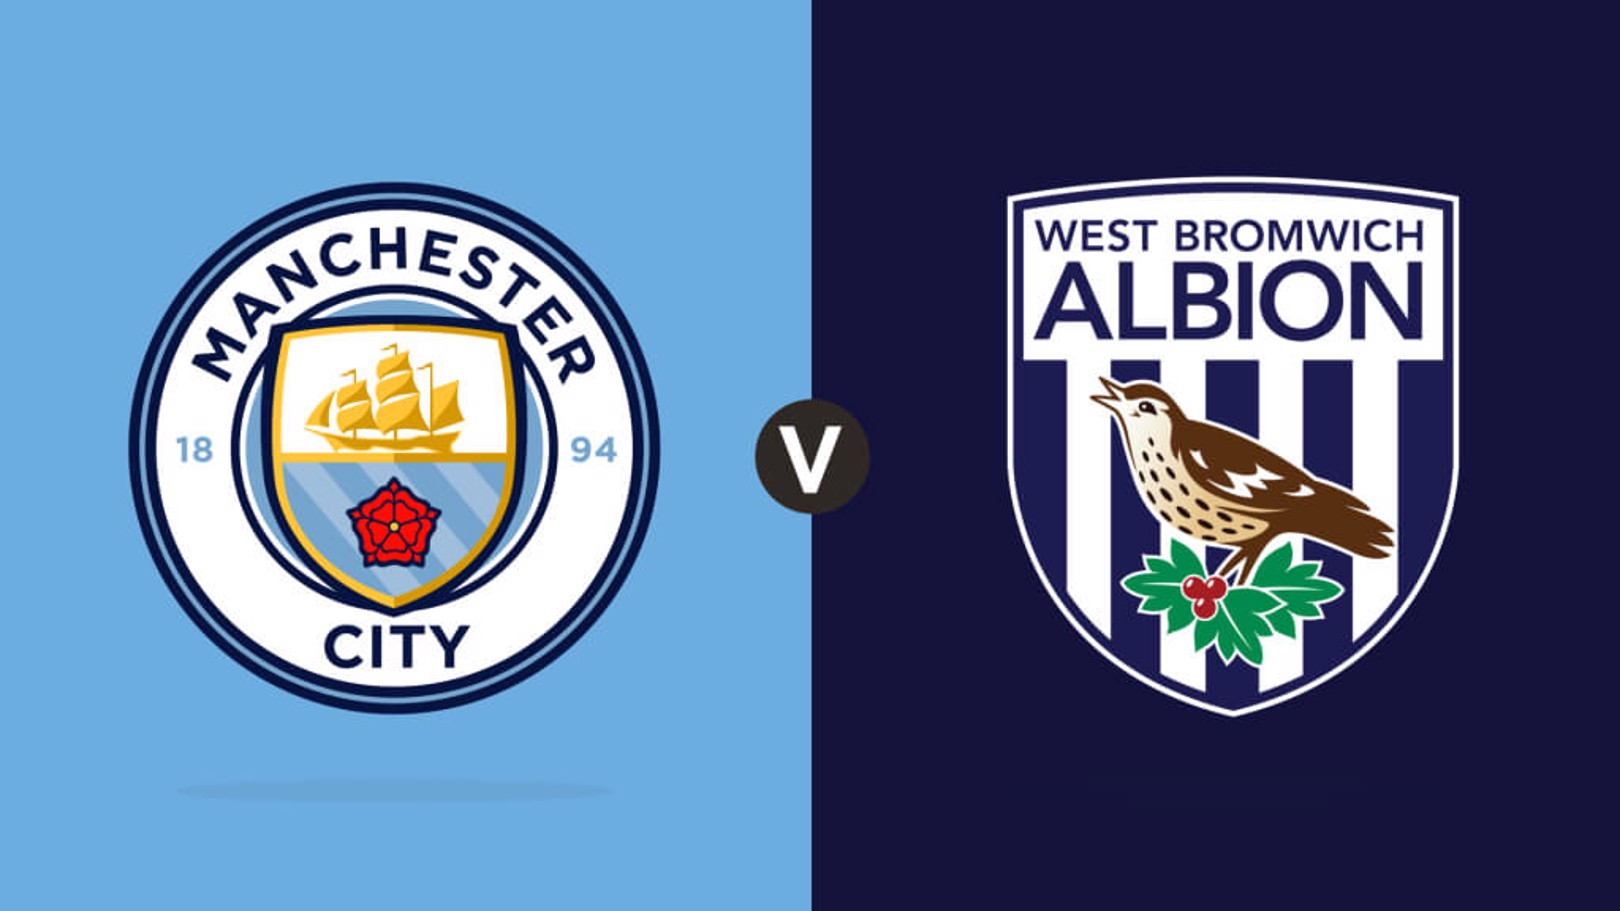 City v West Brom MATCH DAY LIVE